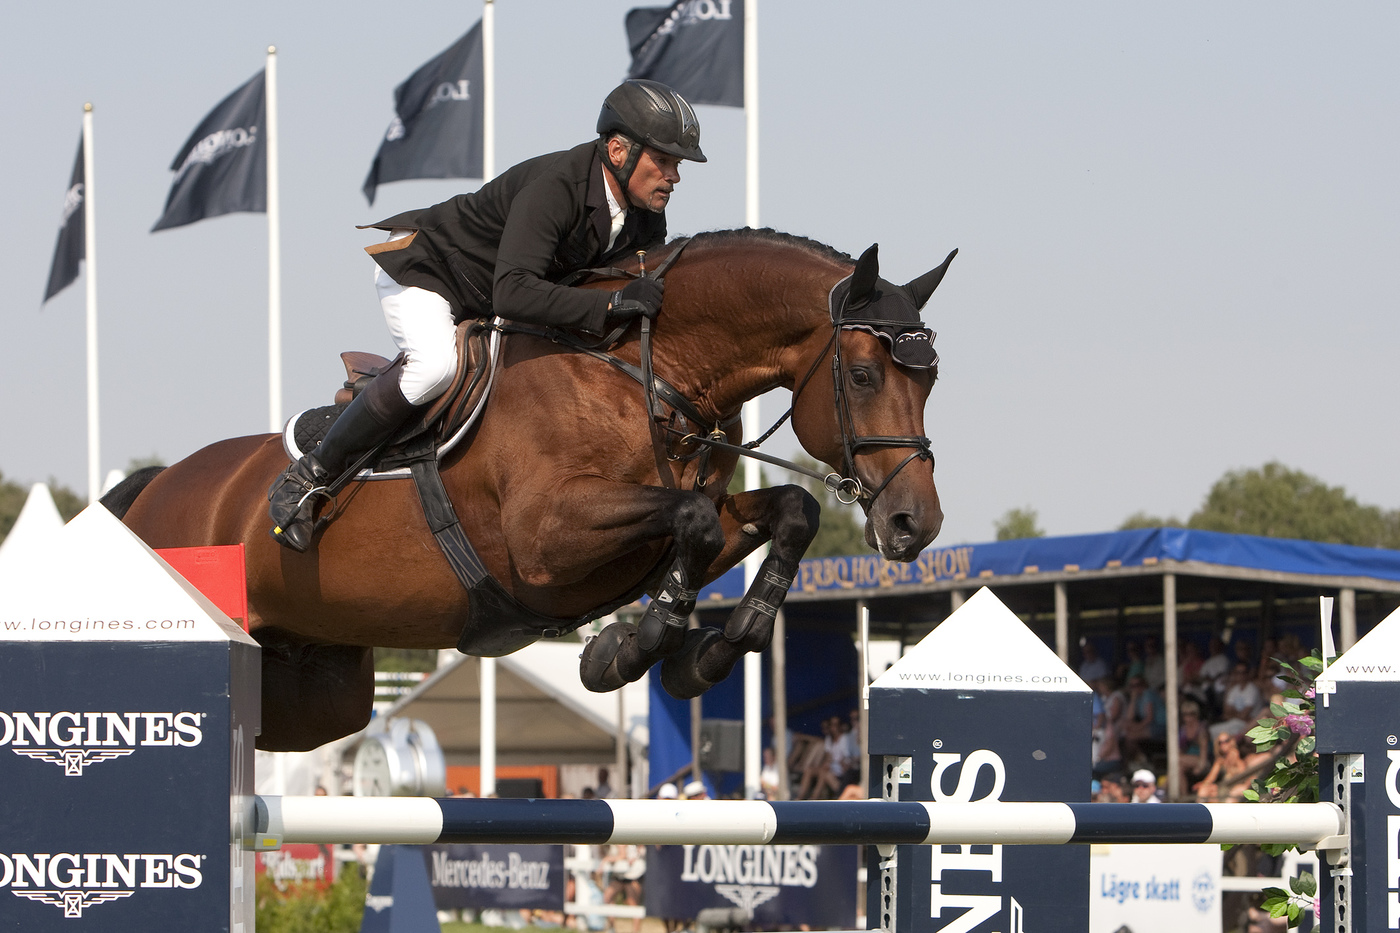 Longines Show Jumping Event: Falsterbo Horse Show 2010 4